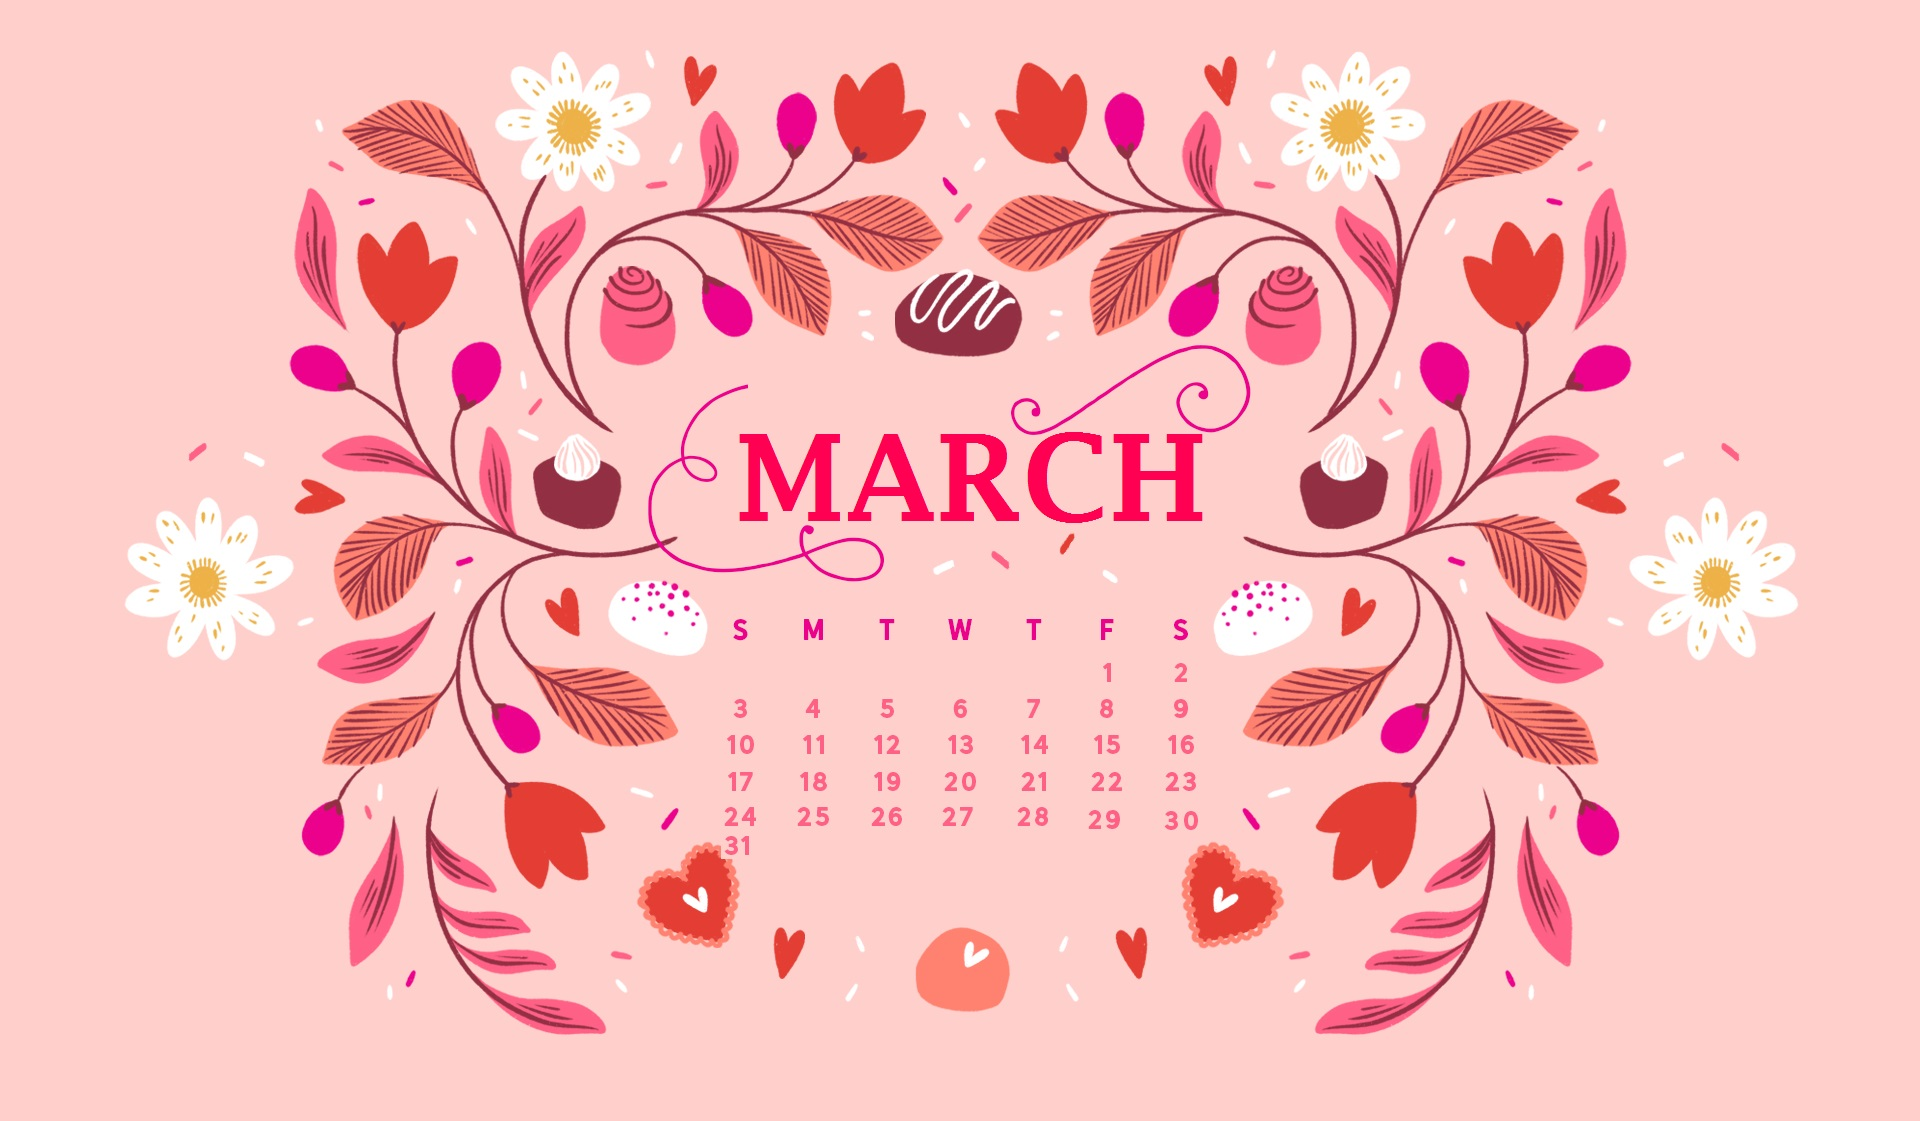 March 2019 Desktop Background Screensaver Calendar 2019 1920x1121